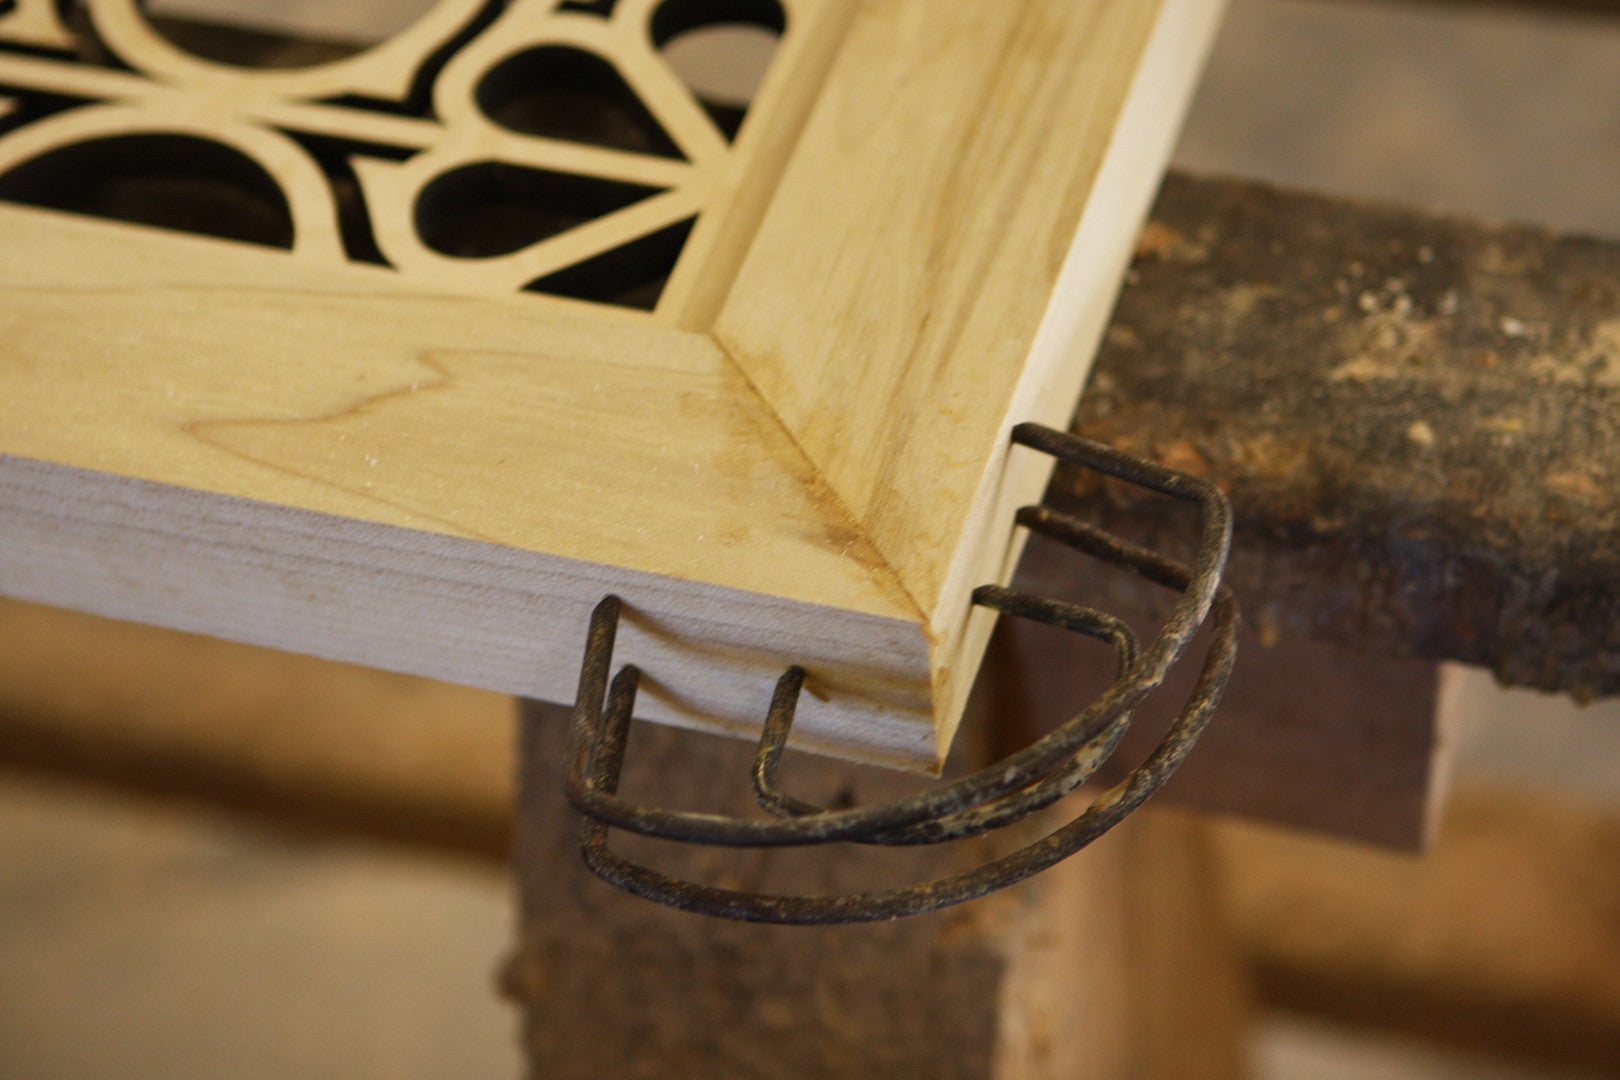 Glueing Up Mitered Doors With C-Clamps